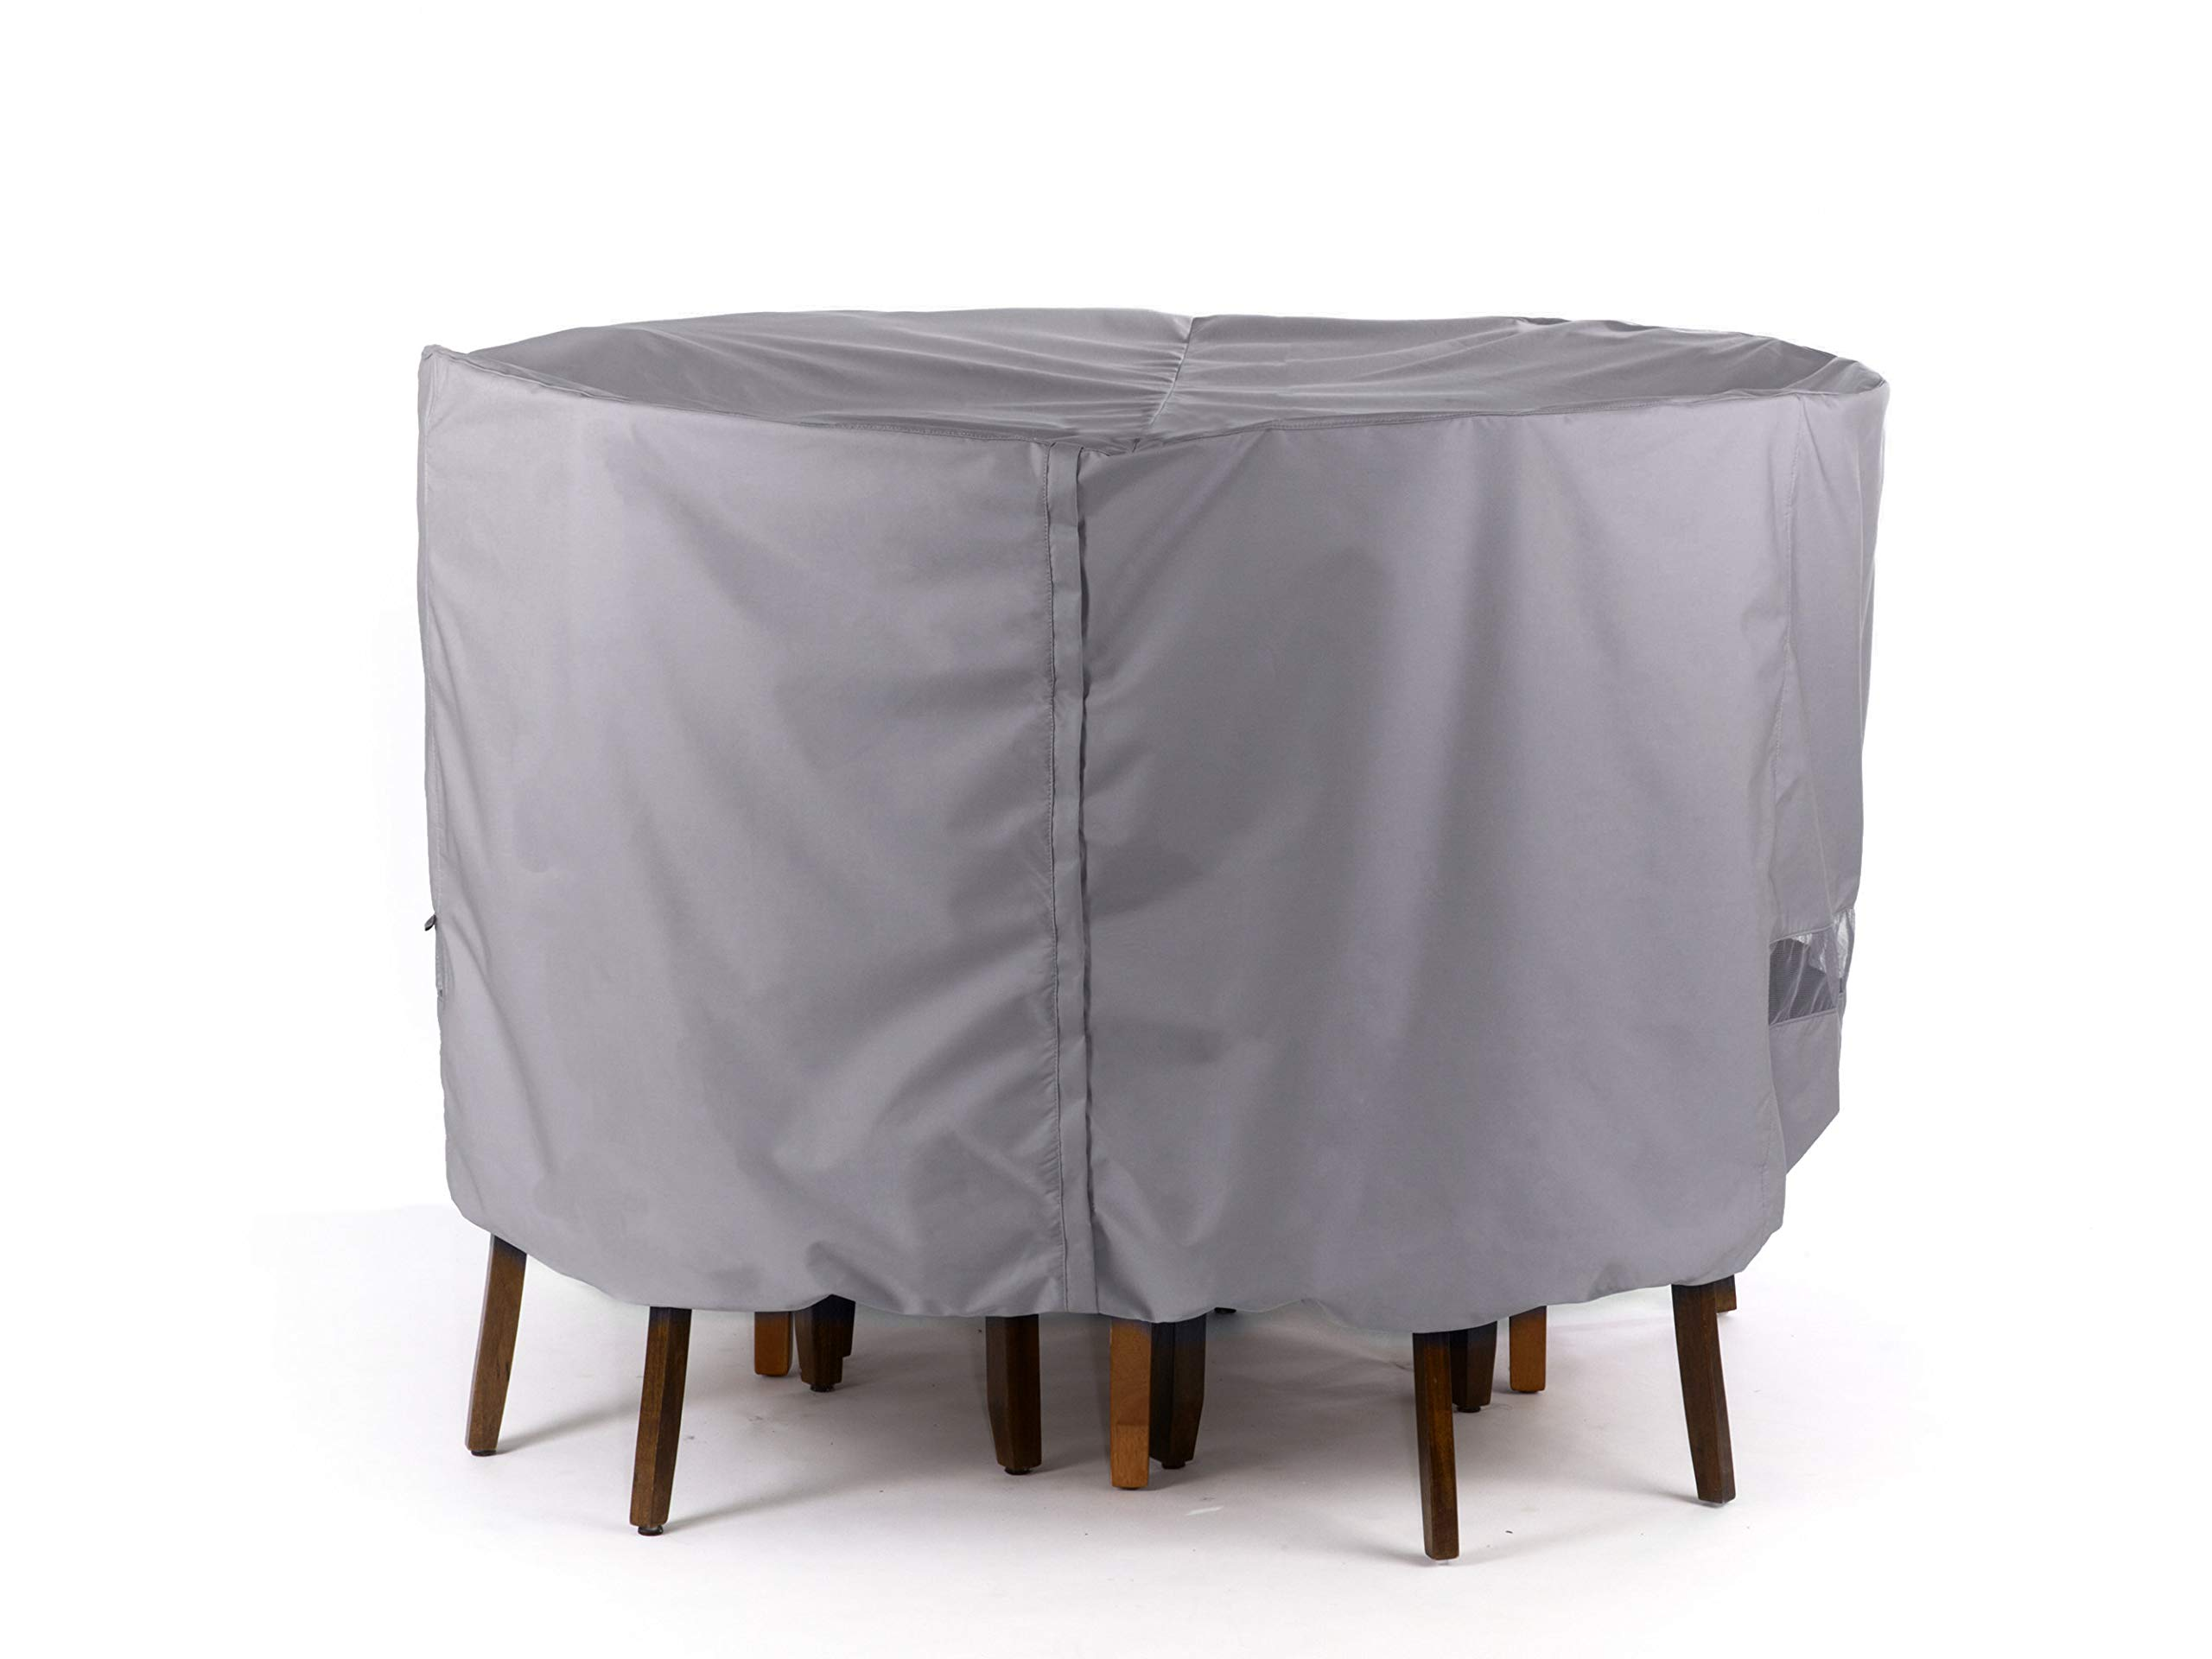 Covermates Round Dining Table/Chair Set Cover 132DIAMETER x 30H Elite Polyester - Charcoal